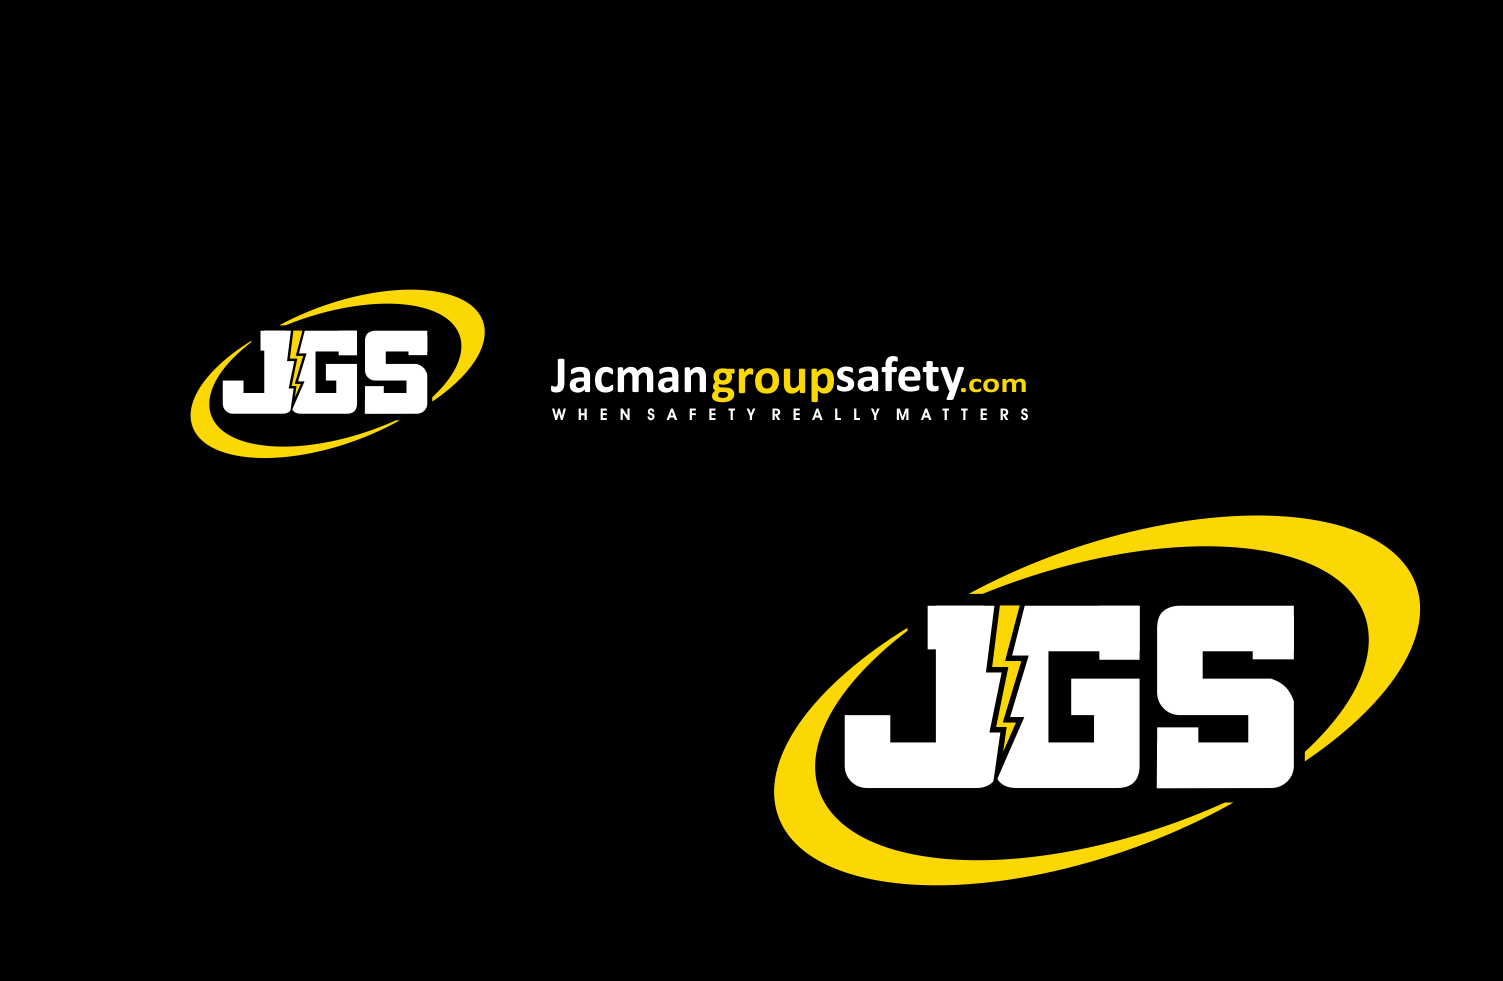 Logo Design by edwin123 - Entry No. 36 in the Logo Design Contest The Jacman Group Logo Design.